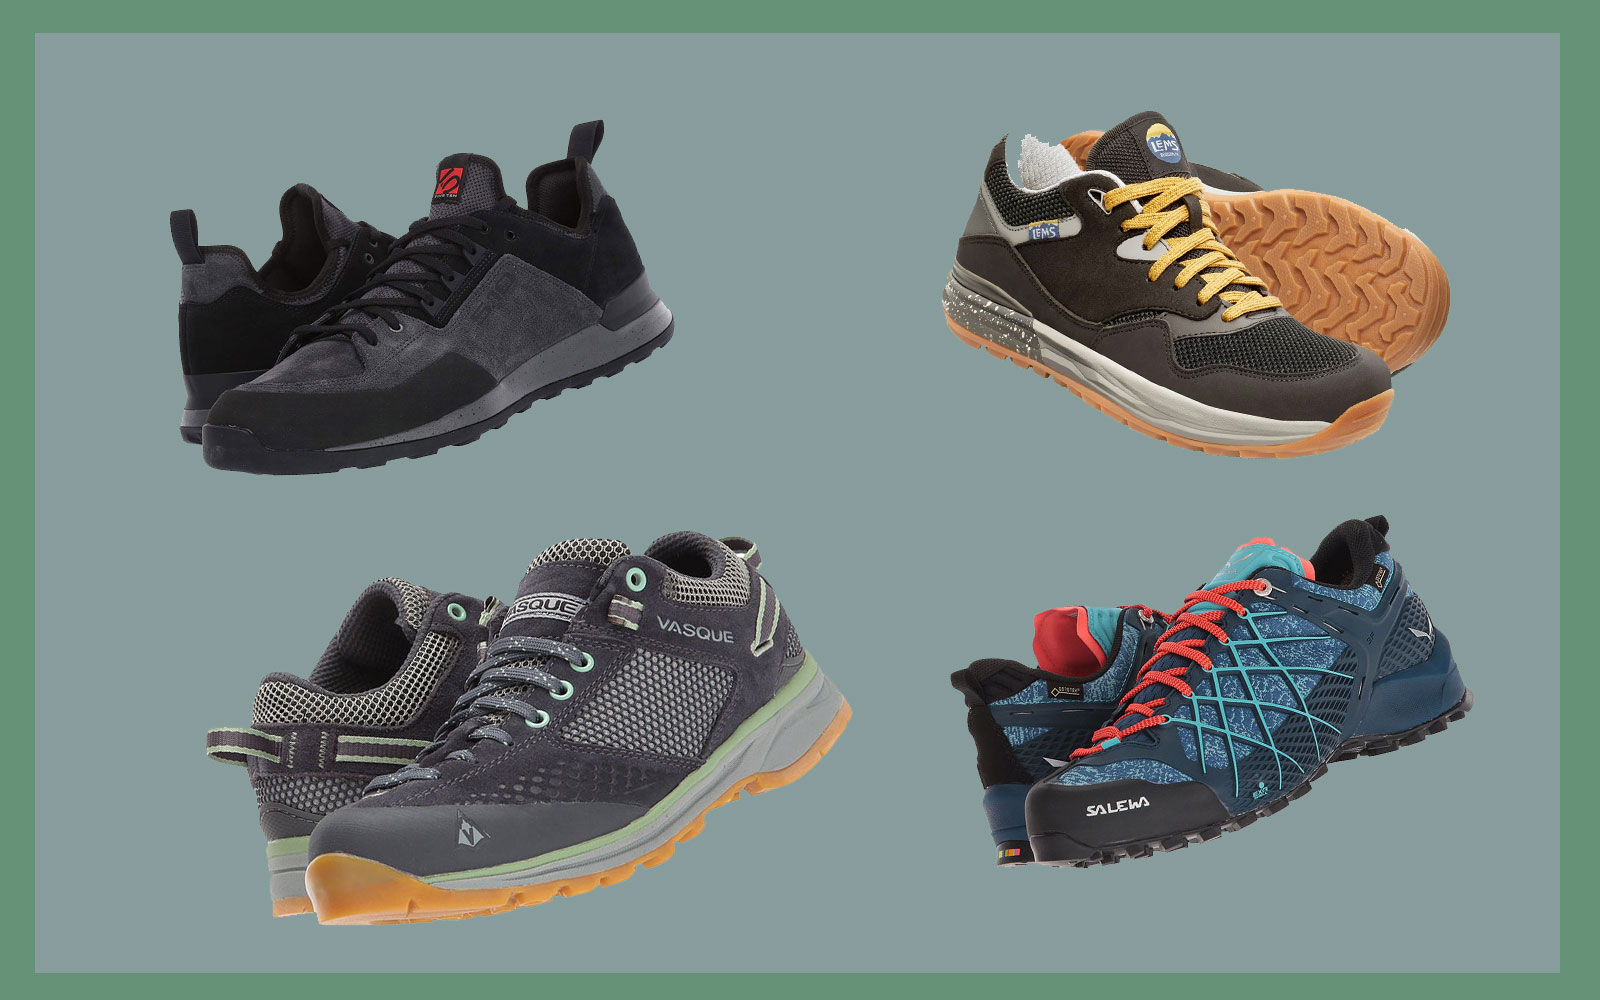 The Best Lightweight Hiking Shoes for Men and Women